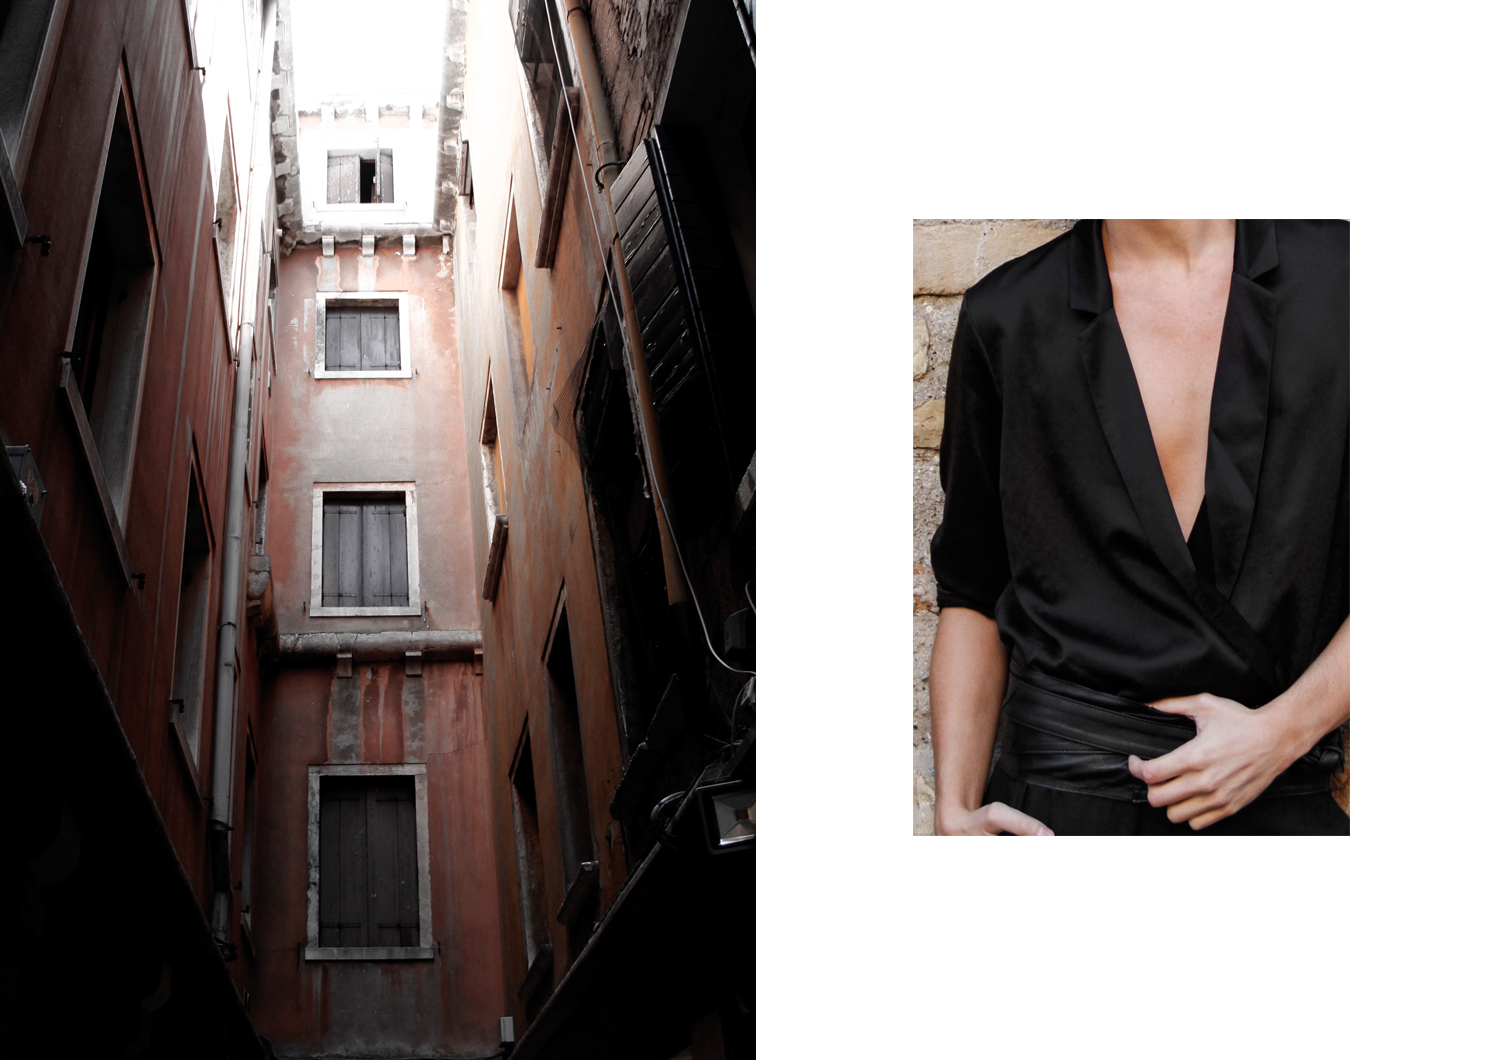 Look_GeorgMallner_Silk_Pyjama_PyjamaLook_outfitoftheday_Ourfit_style_Leather_cummrebund_Suitpants_Asos_Italy_Photoshoot_Streetstyle_editorial_3